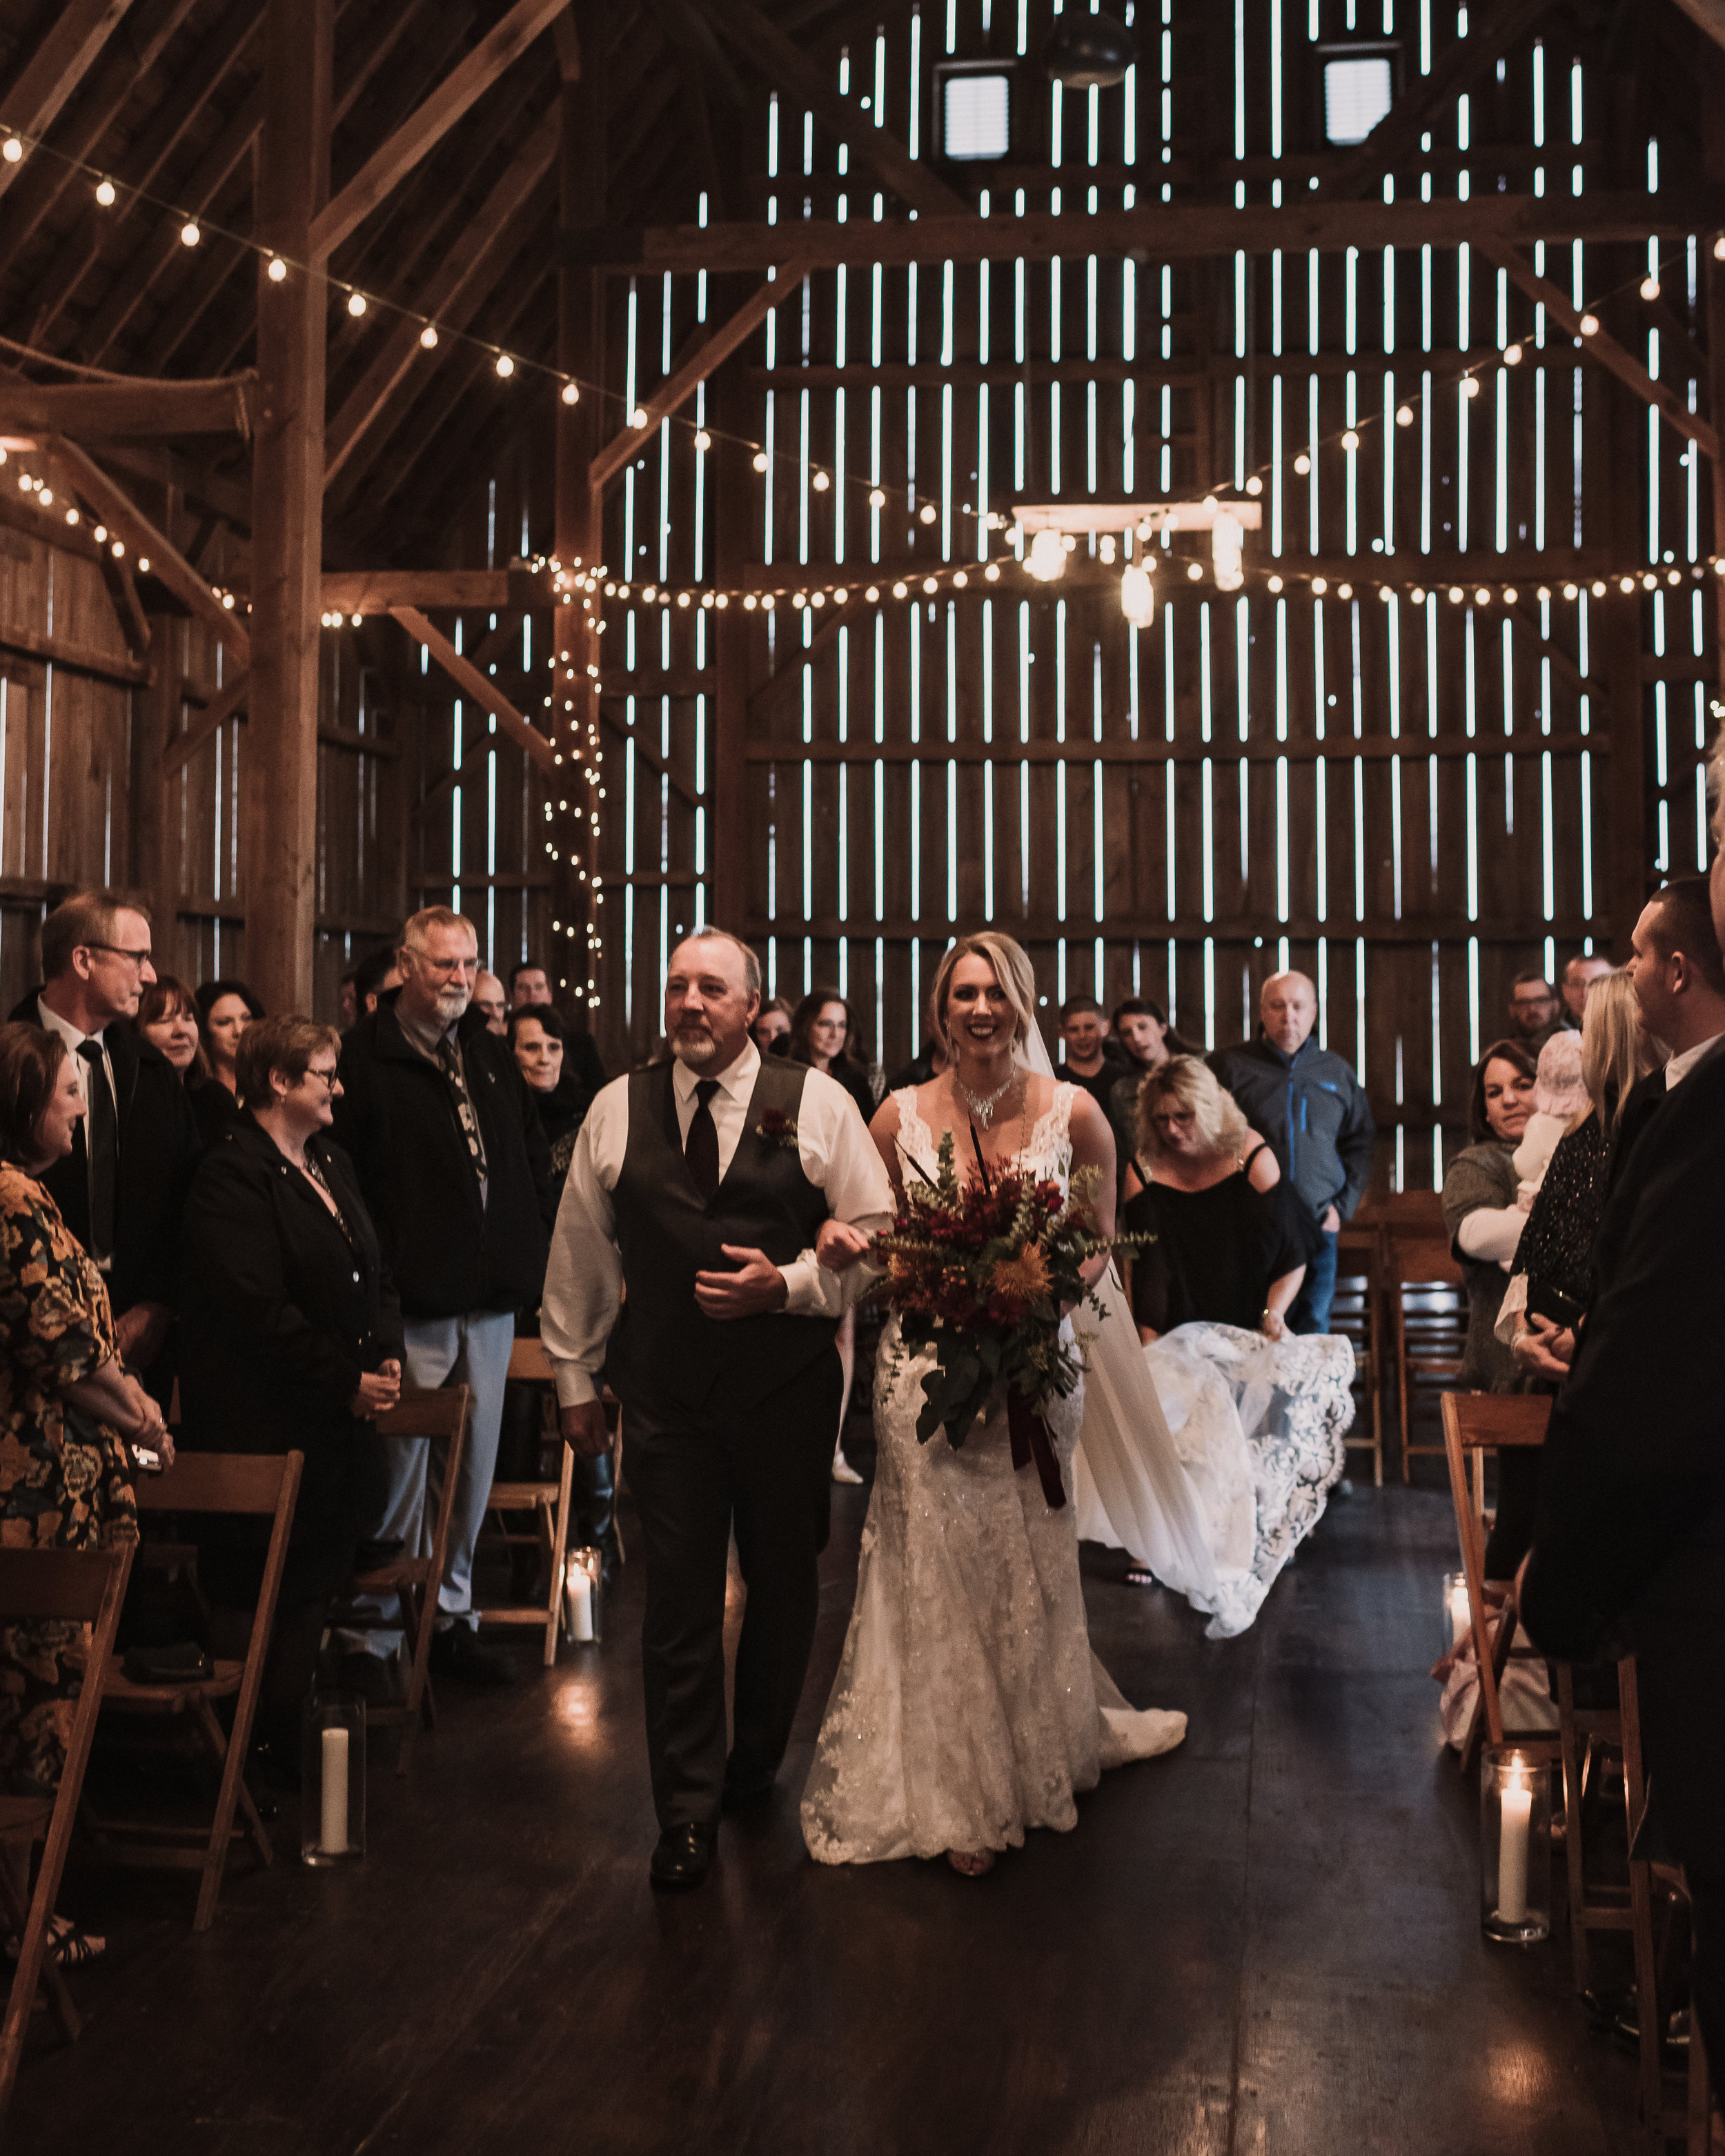 F.A.Q'S - TIFFANY BLUE PHOTOGRAPHY WEDDING PACKAGES( FREQUENTLY ASKED QUESTIONS )